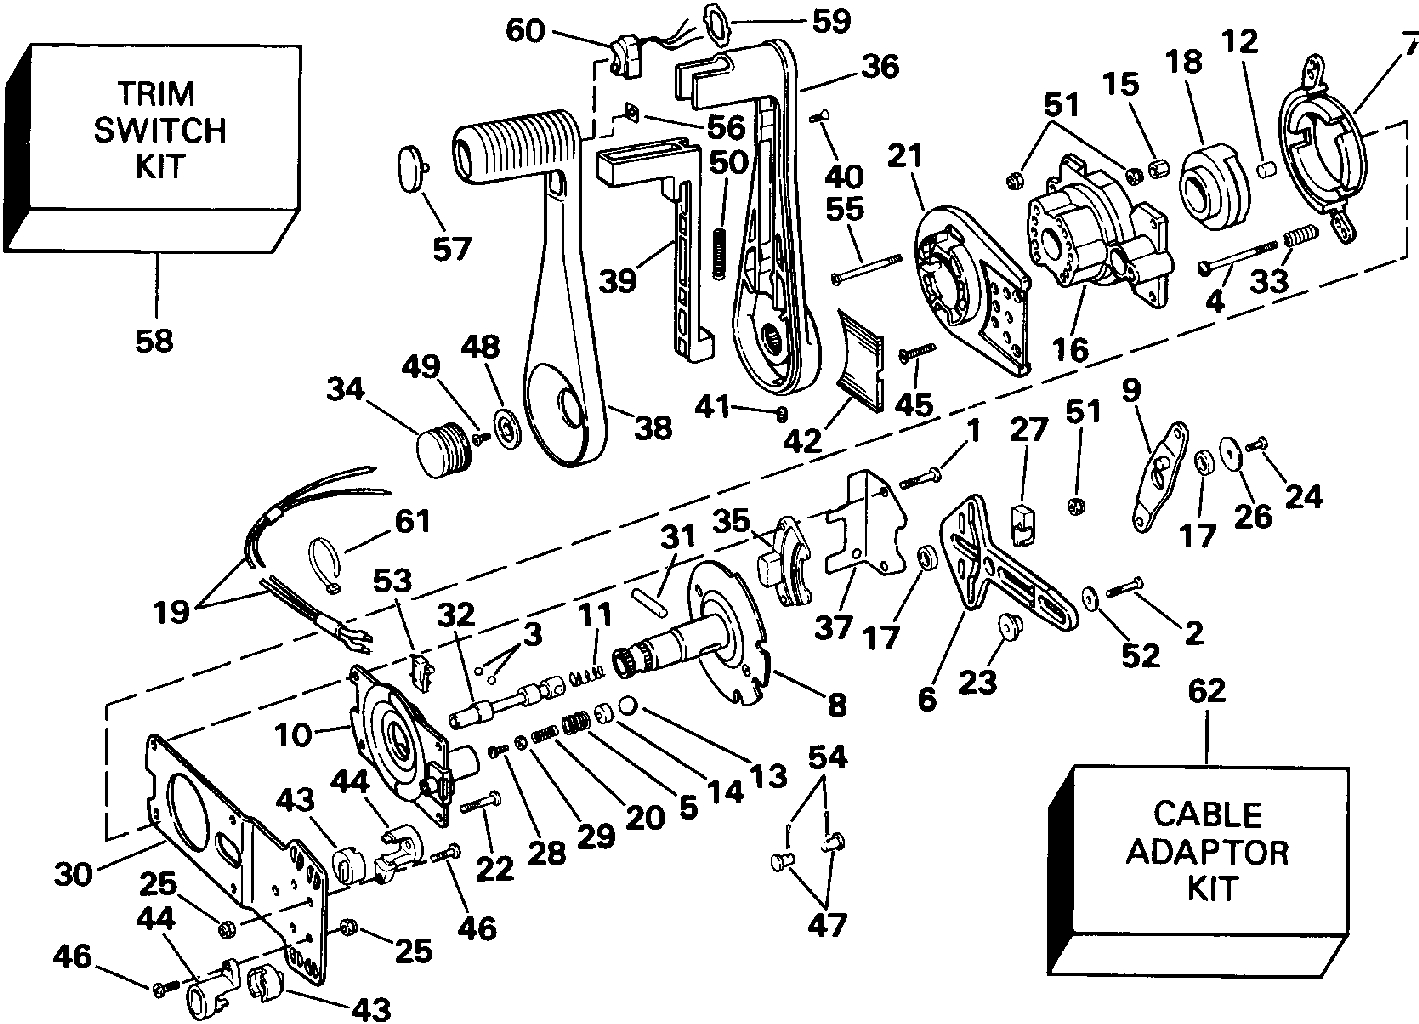 1988 Johnson 9 Hp Outboard Parts Diagram Wiring | Wiring Library - Evinrude Wiring Harness Diagram